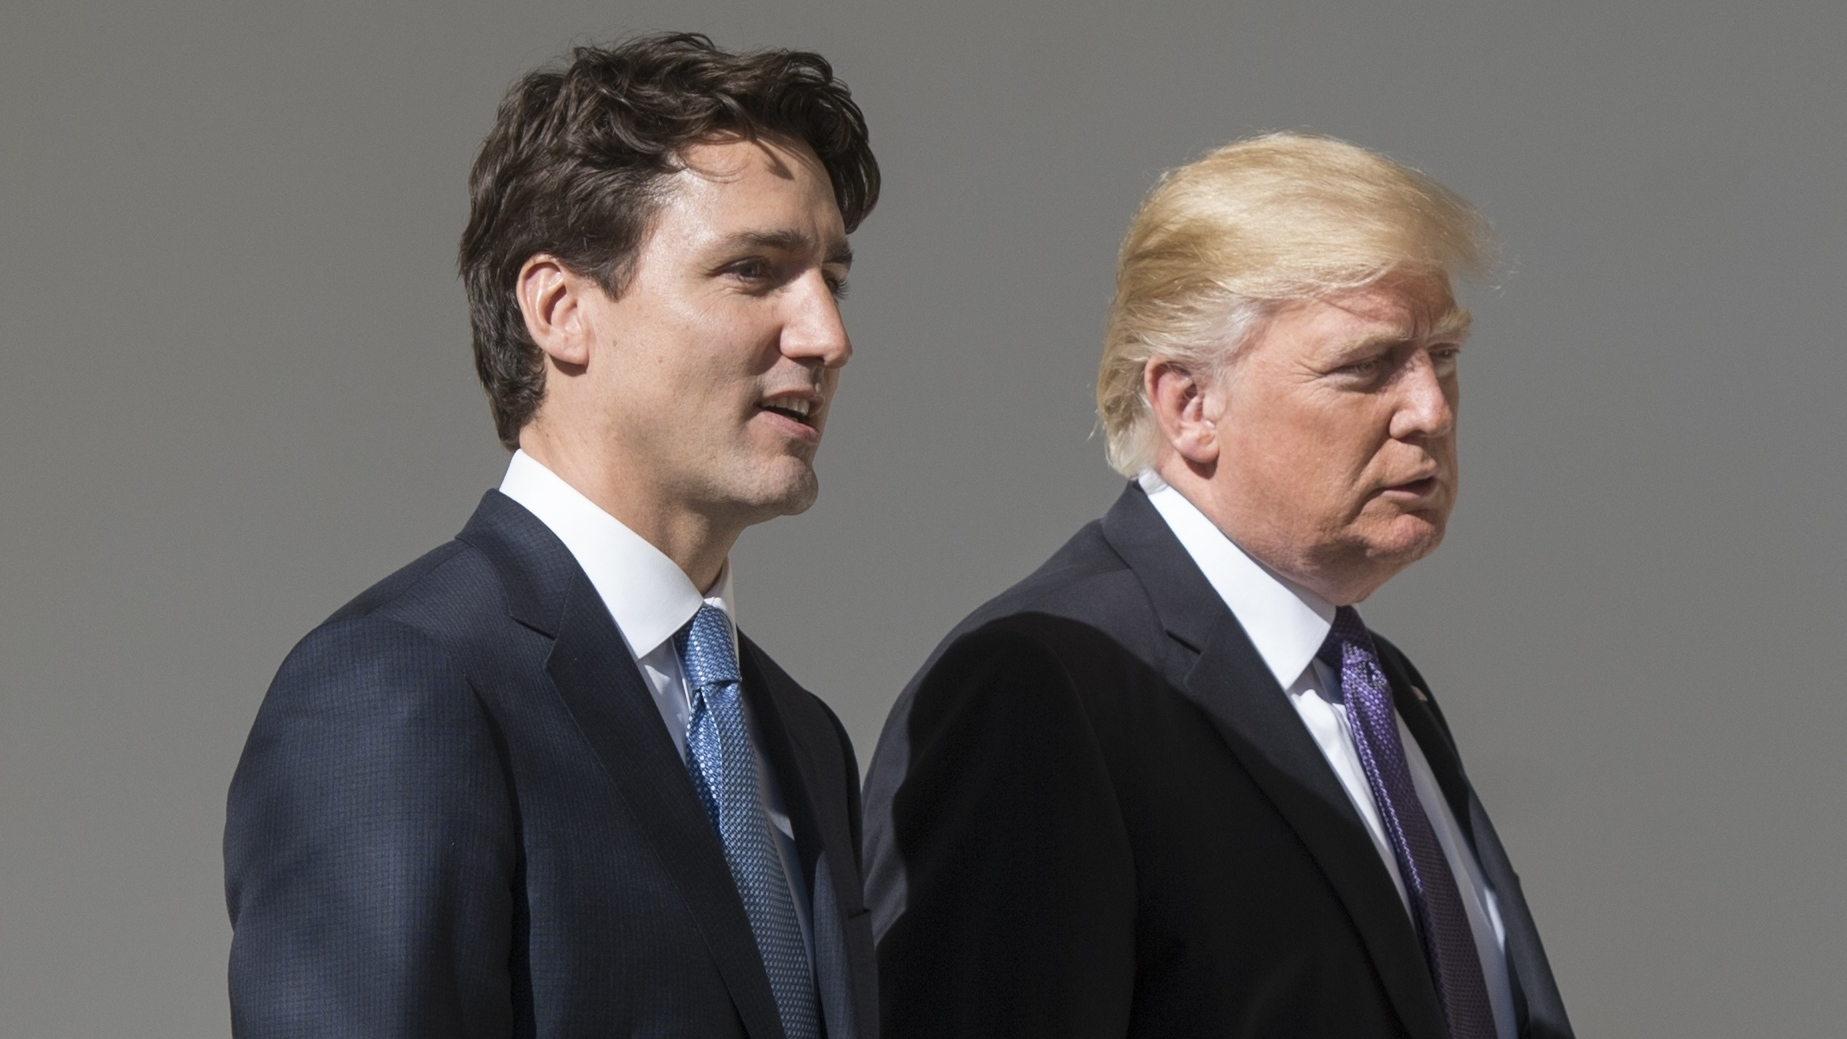 President Trump and Canadian Prime Minister Justin Trudeau